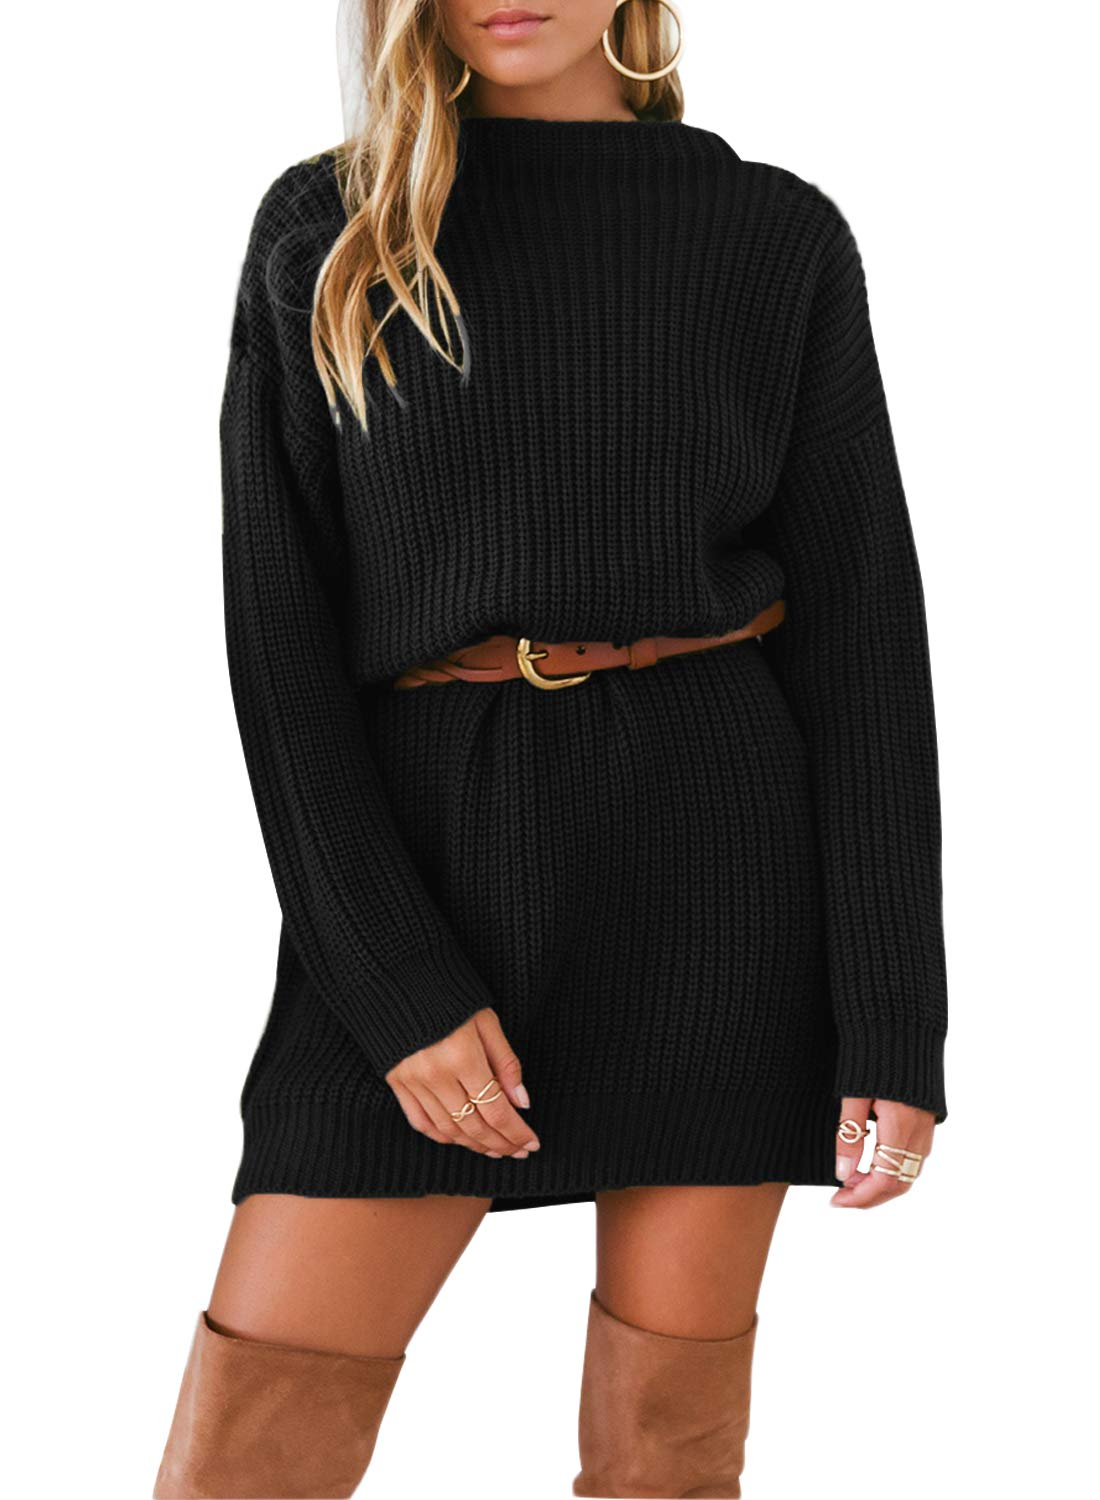 Asvivid Womens Long Sleeve Round Neck Knit Loose Solid Ladies Long Tunic Tops Pullover Mini Sweater Dress L Black